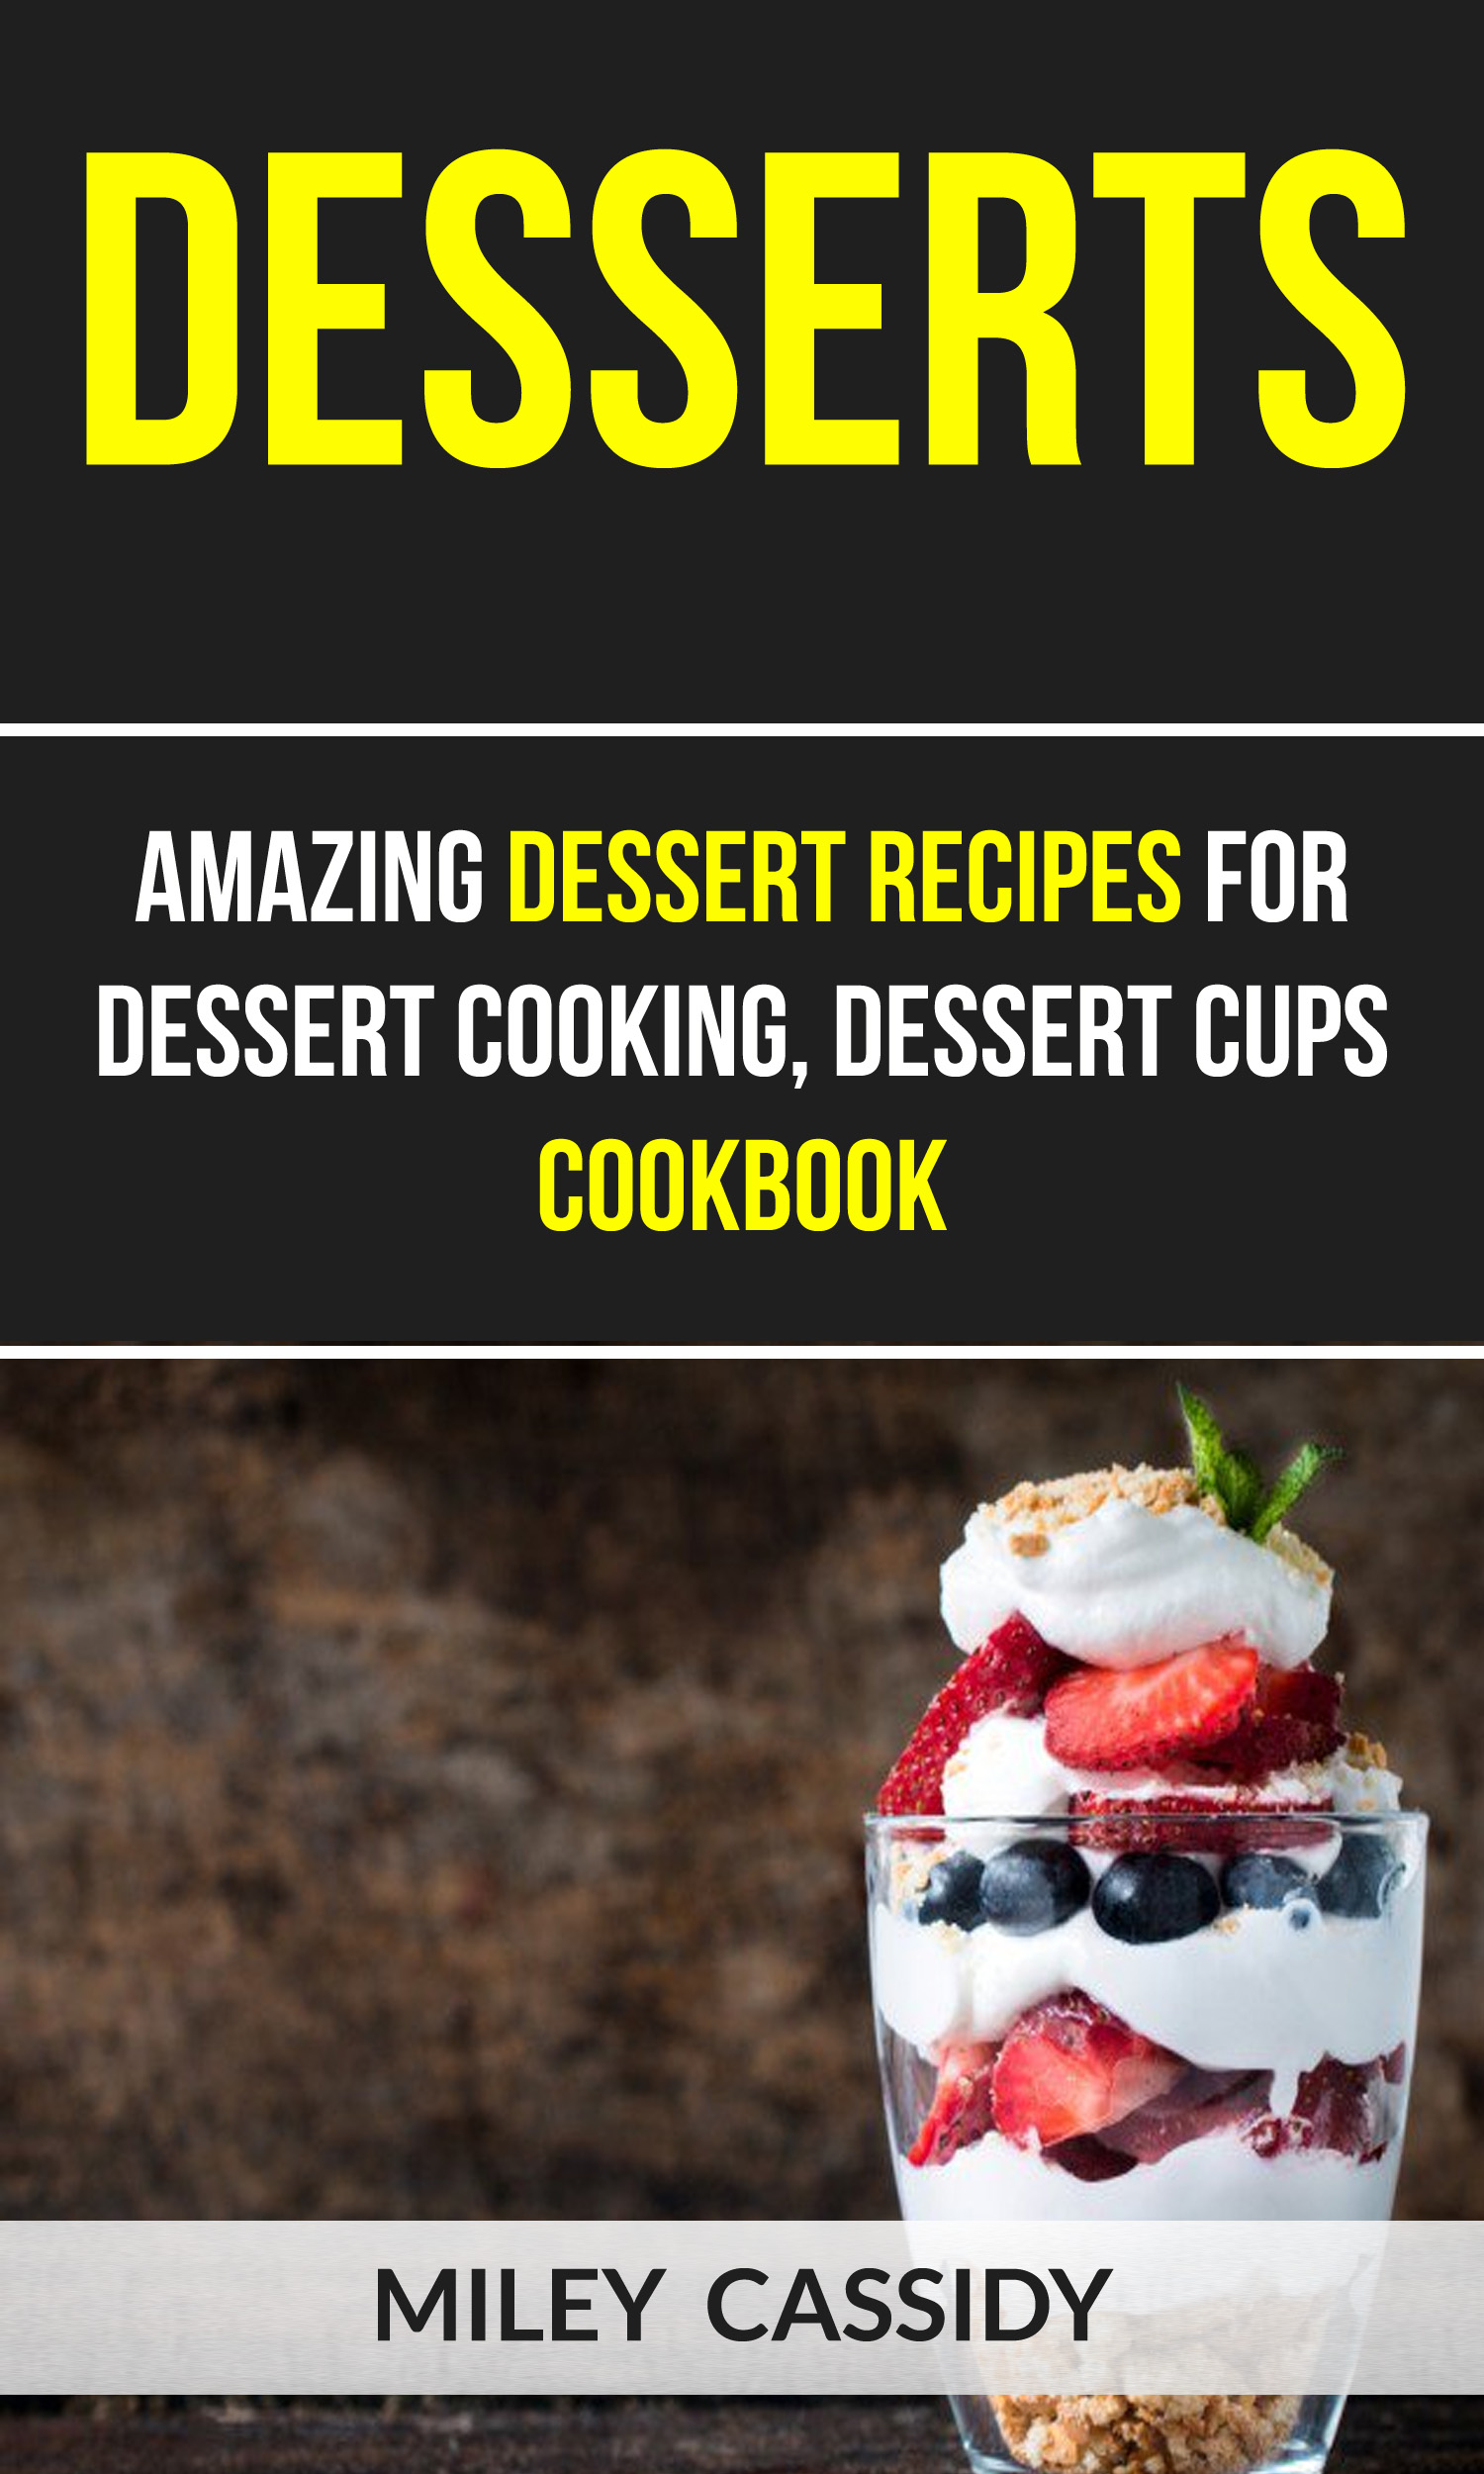 Desserts: amazing dessert recipes for dessert cooking, dessert cups cookbook